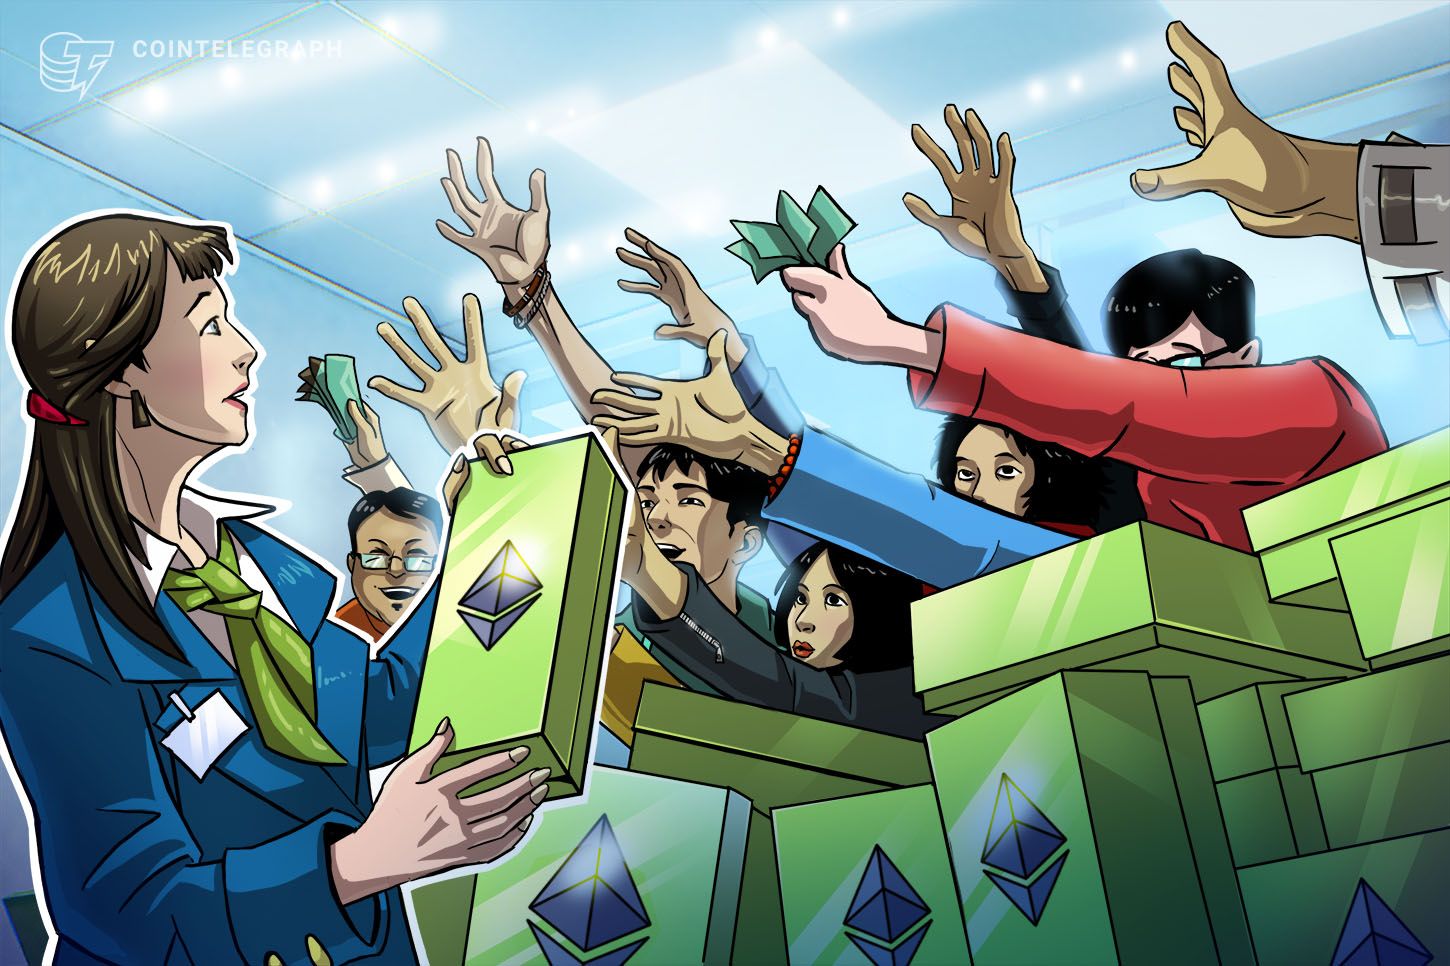 Huge Ethereum buy wall sends ETH to a 19-month high against Bitcoin - Cointelegraph